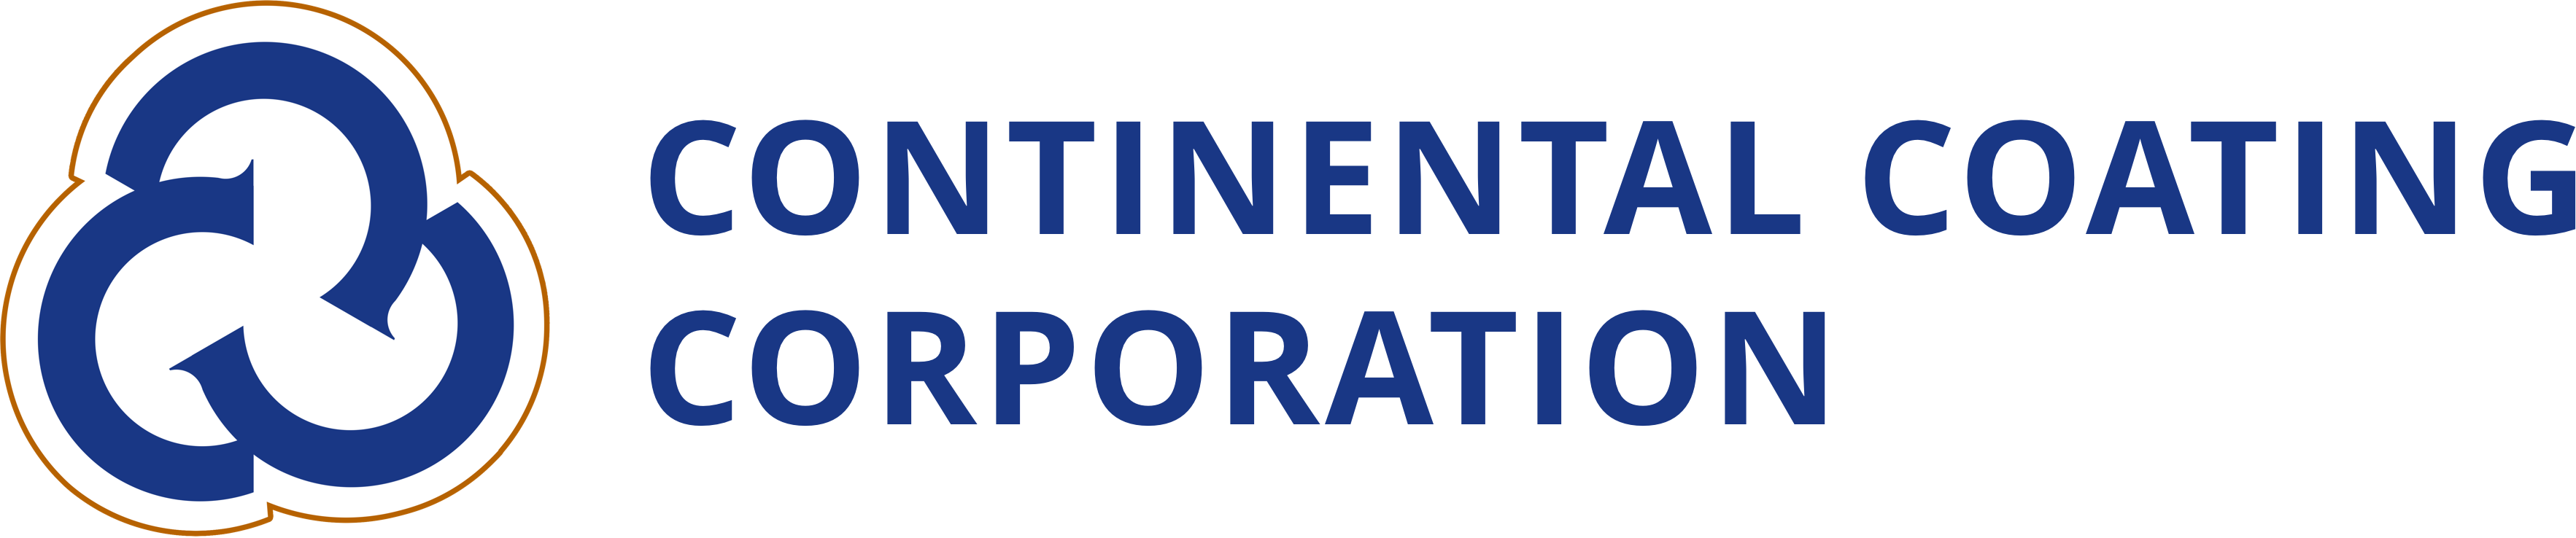 Continental Coating Corporation